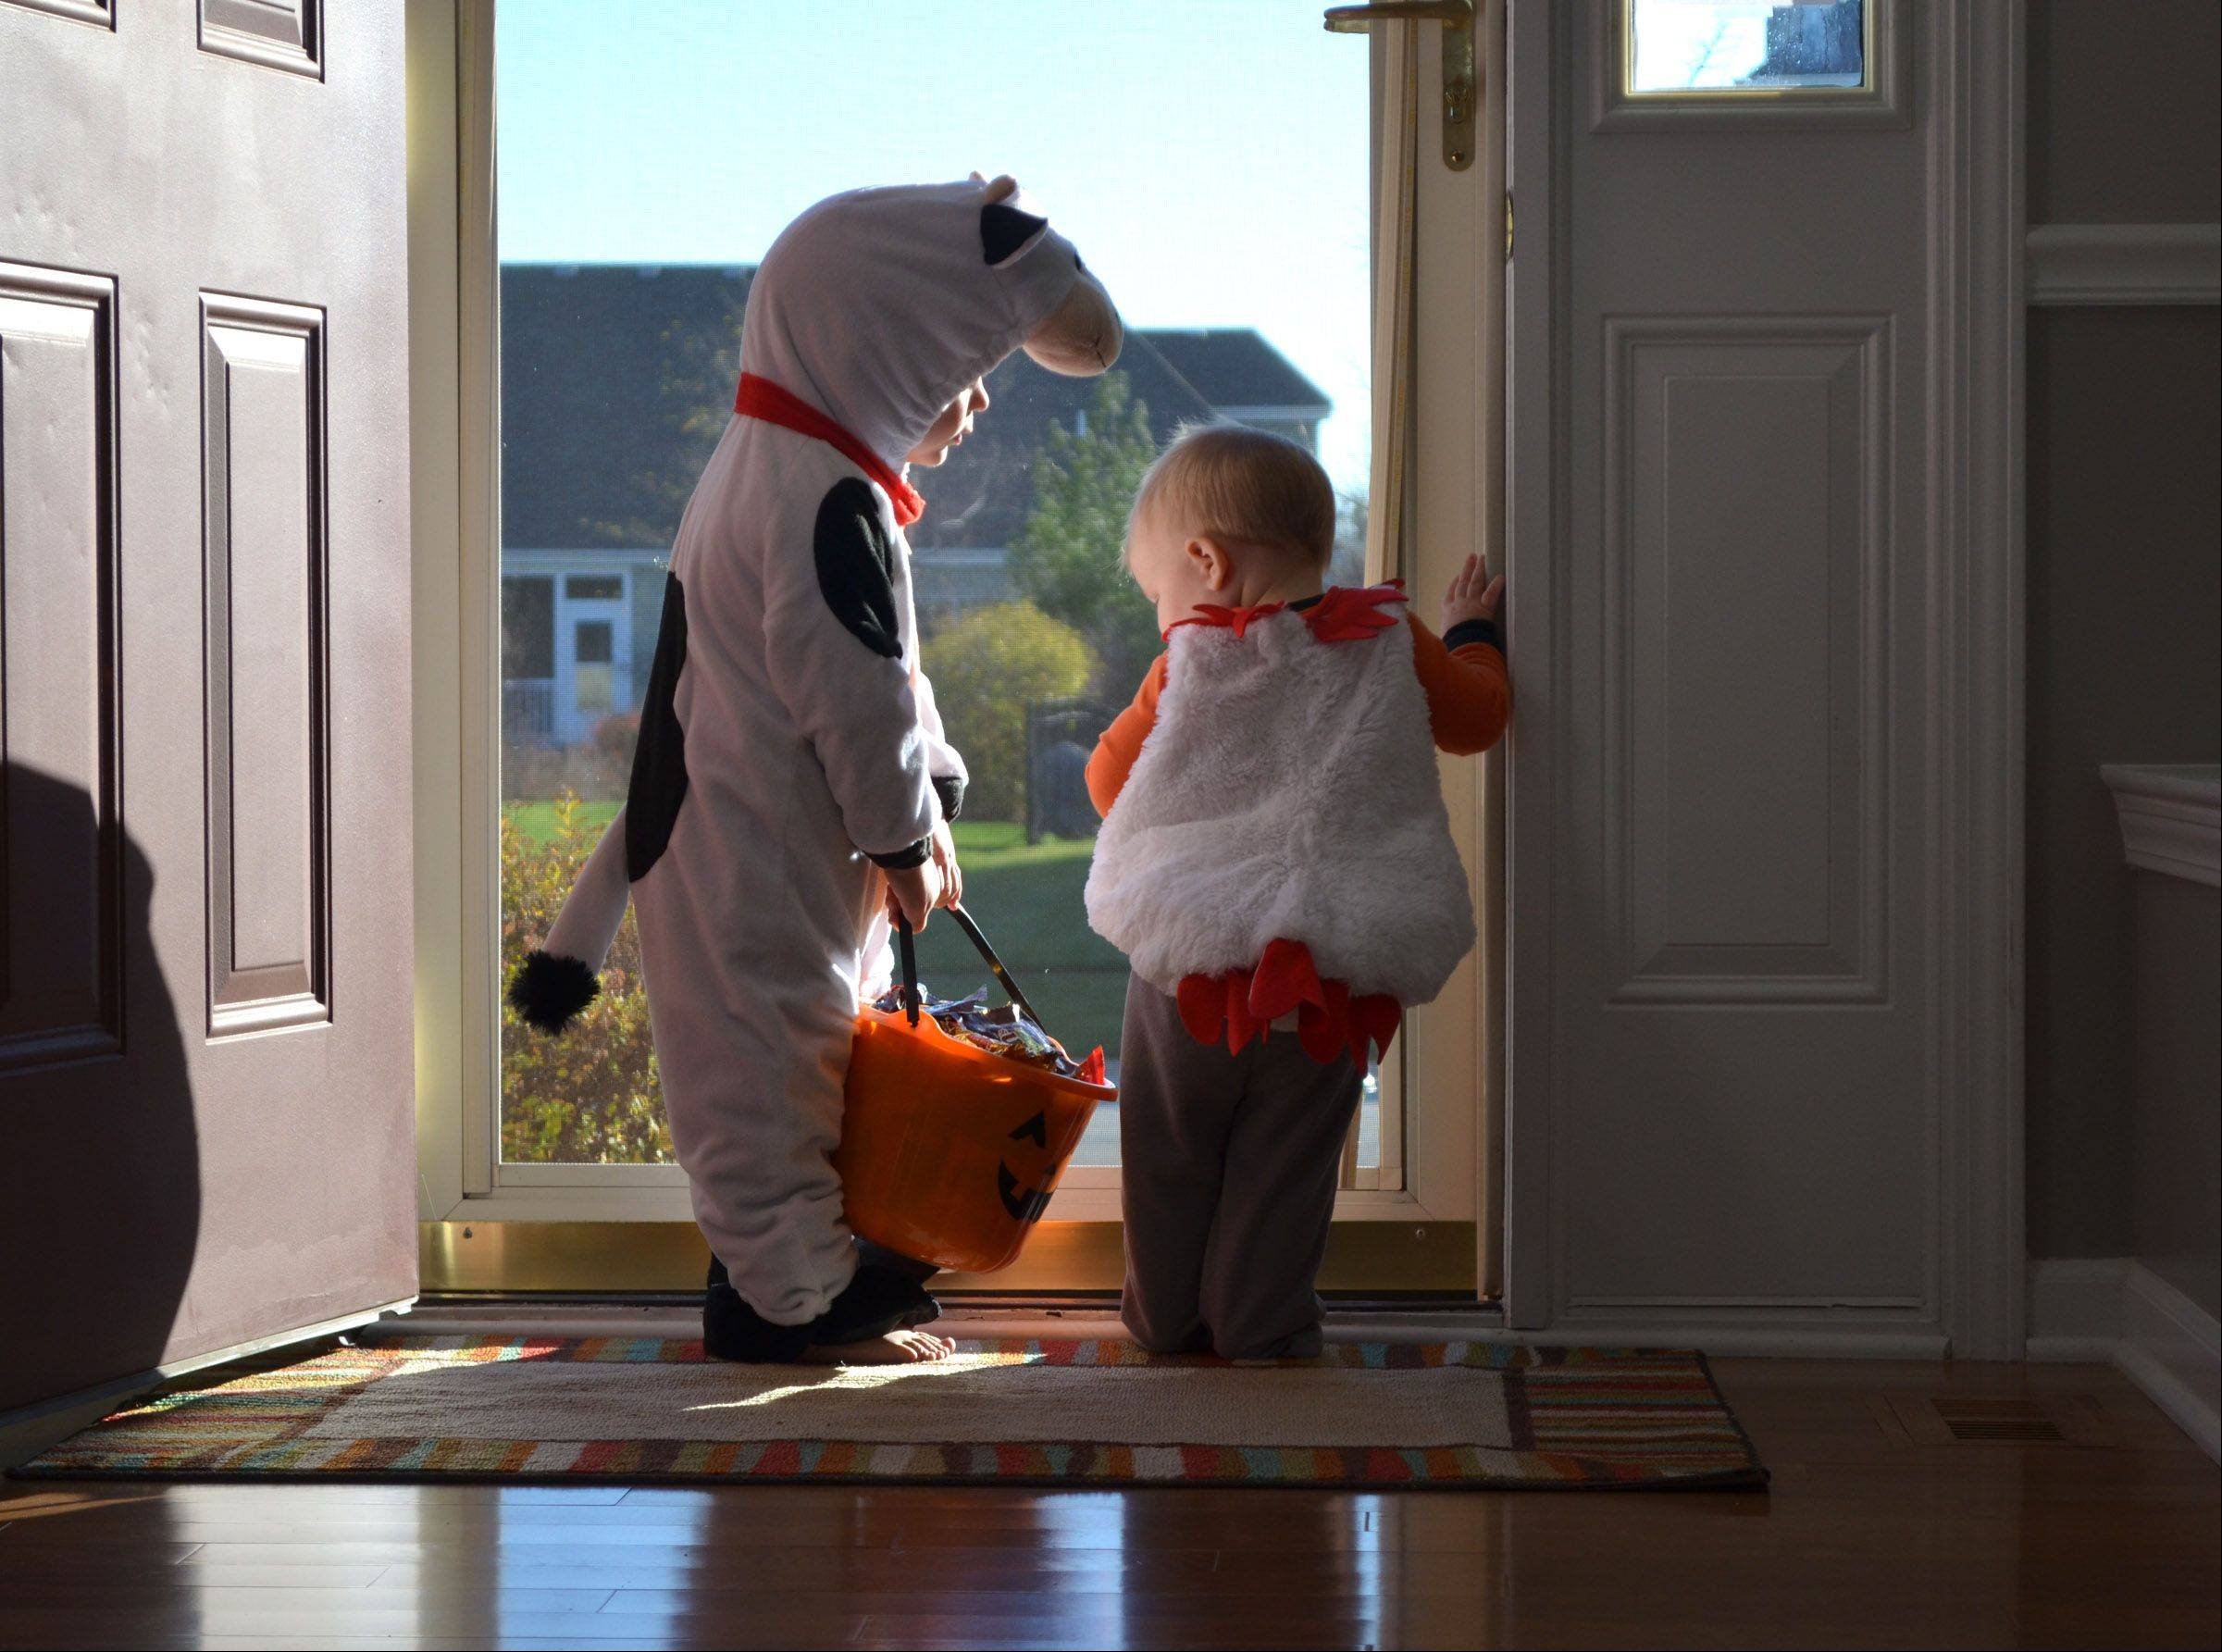 My daughter, Jessica, focused on her boys Colin & Owen as they waited for Trick or Treaters at their front door. It really is better to give than receive.